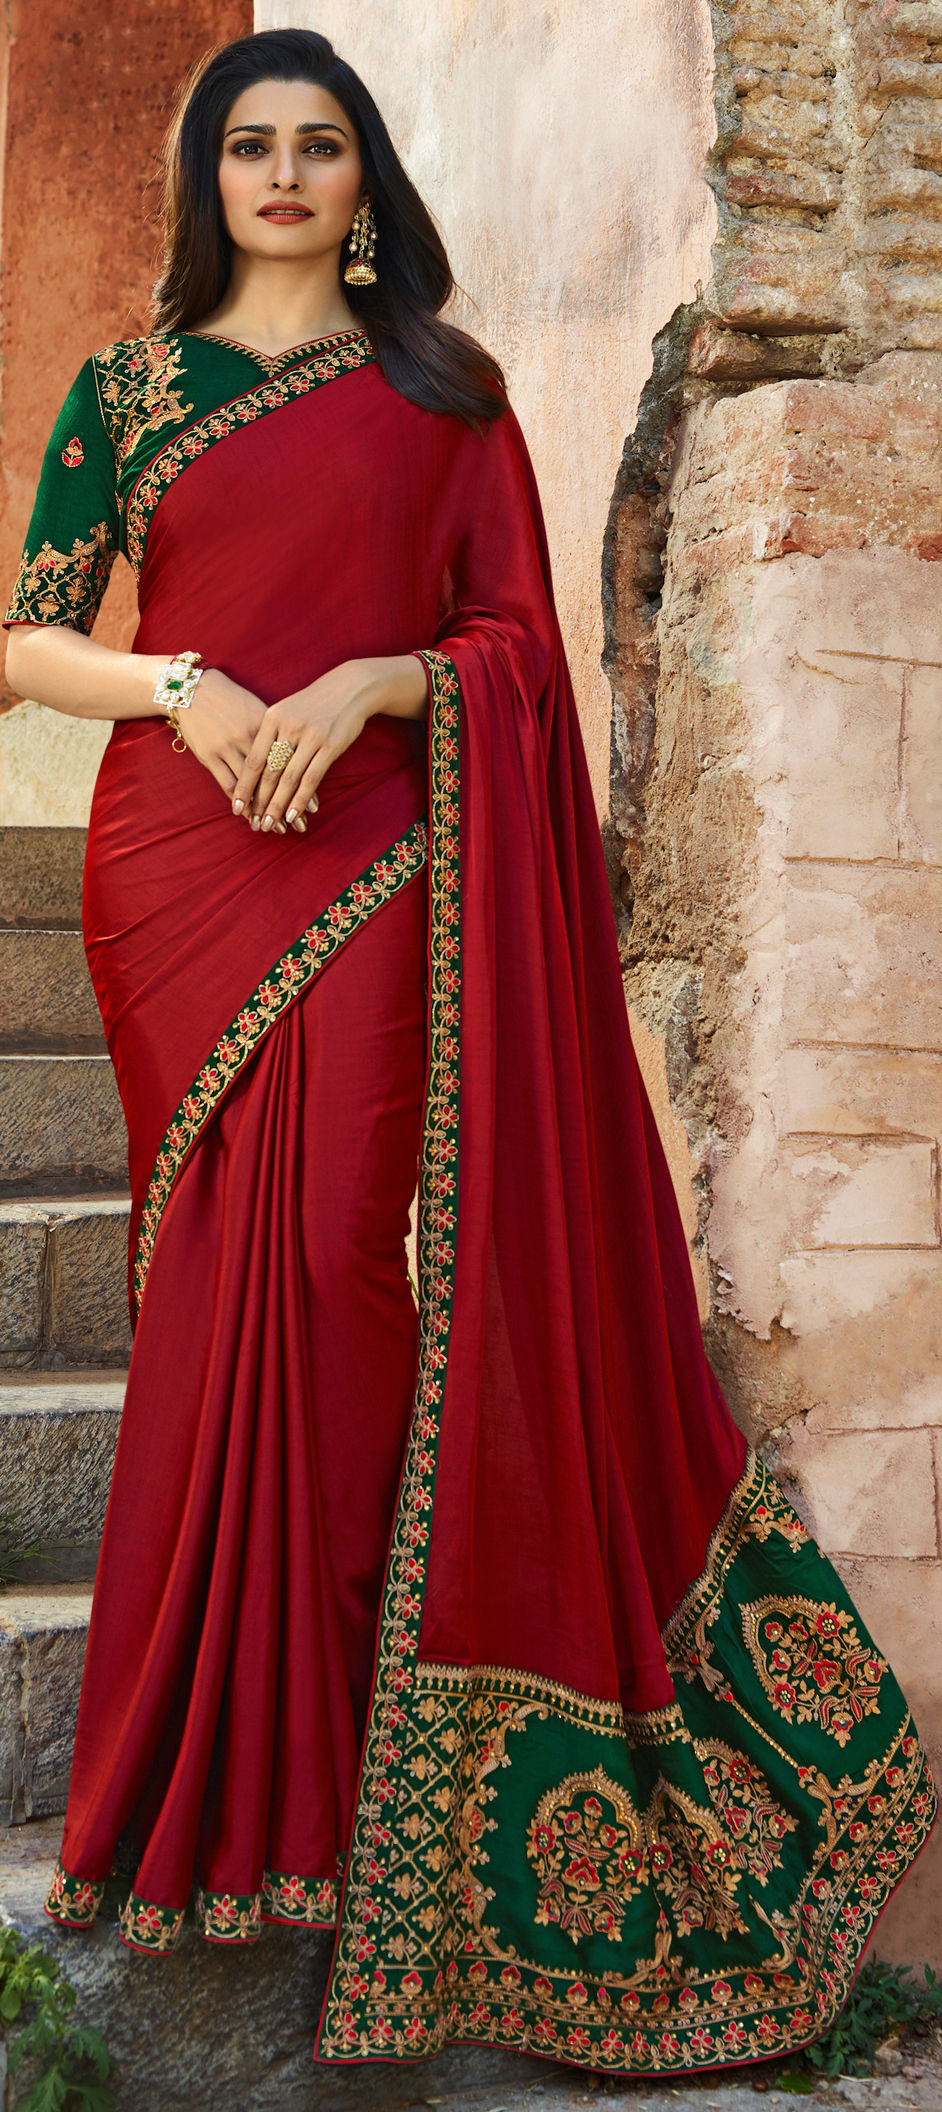 Faux Georgette Bollywood Saree in Red and Maroon with Resham work